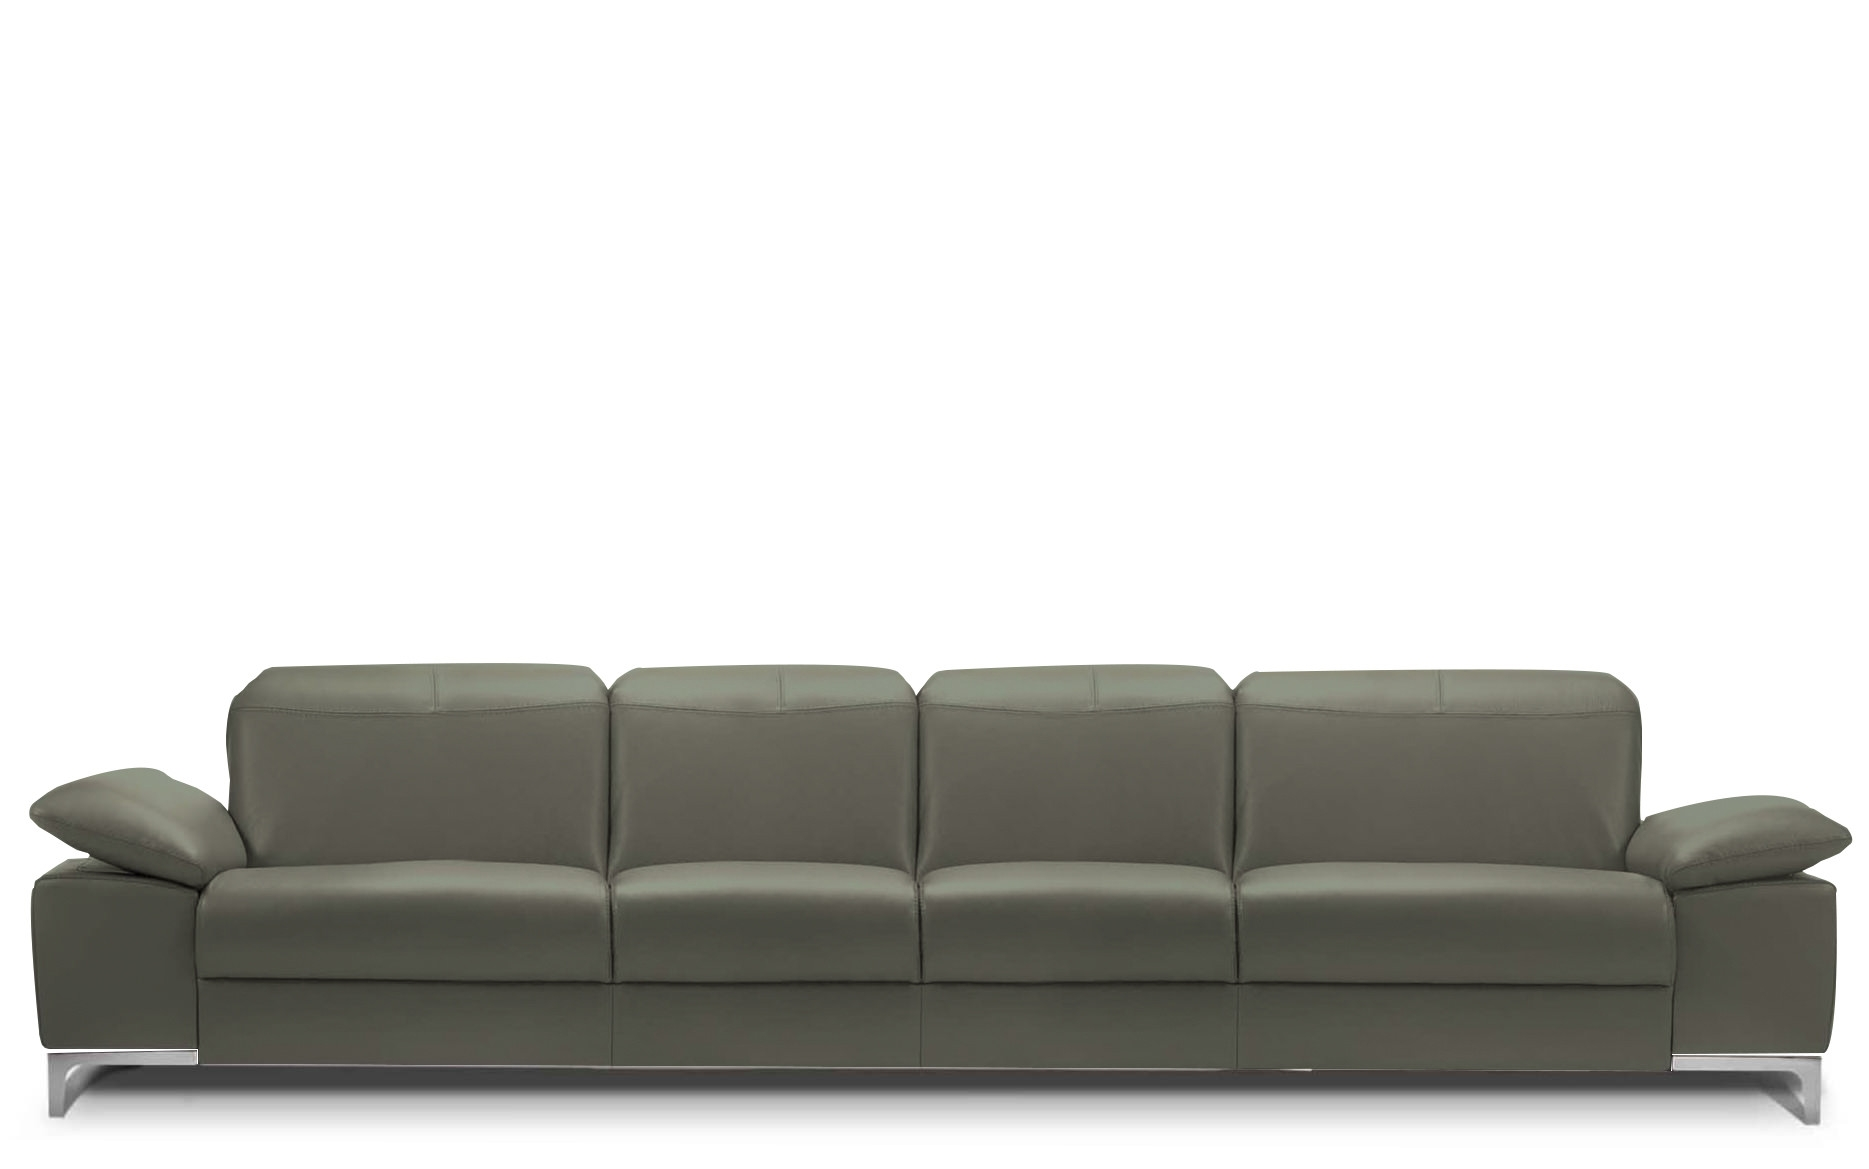 Rom Chronos 4 Seater Leather Sofa Buy At Kontenta Regarding 4 Seat Sofas (Image 15 of 15)